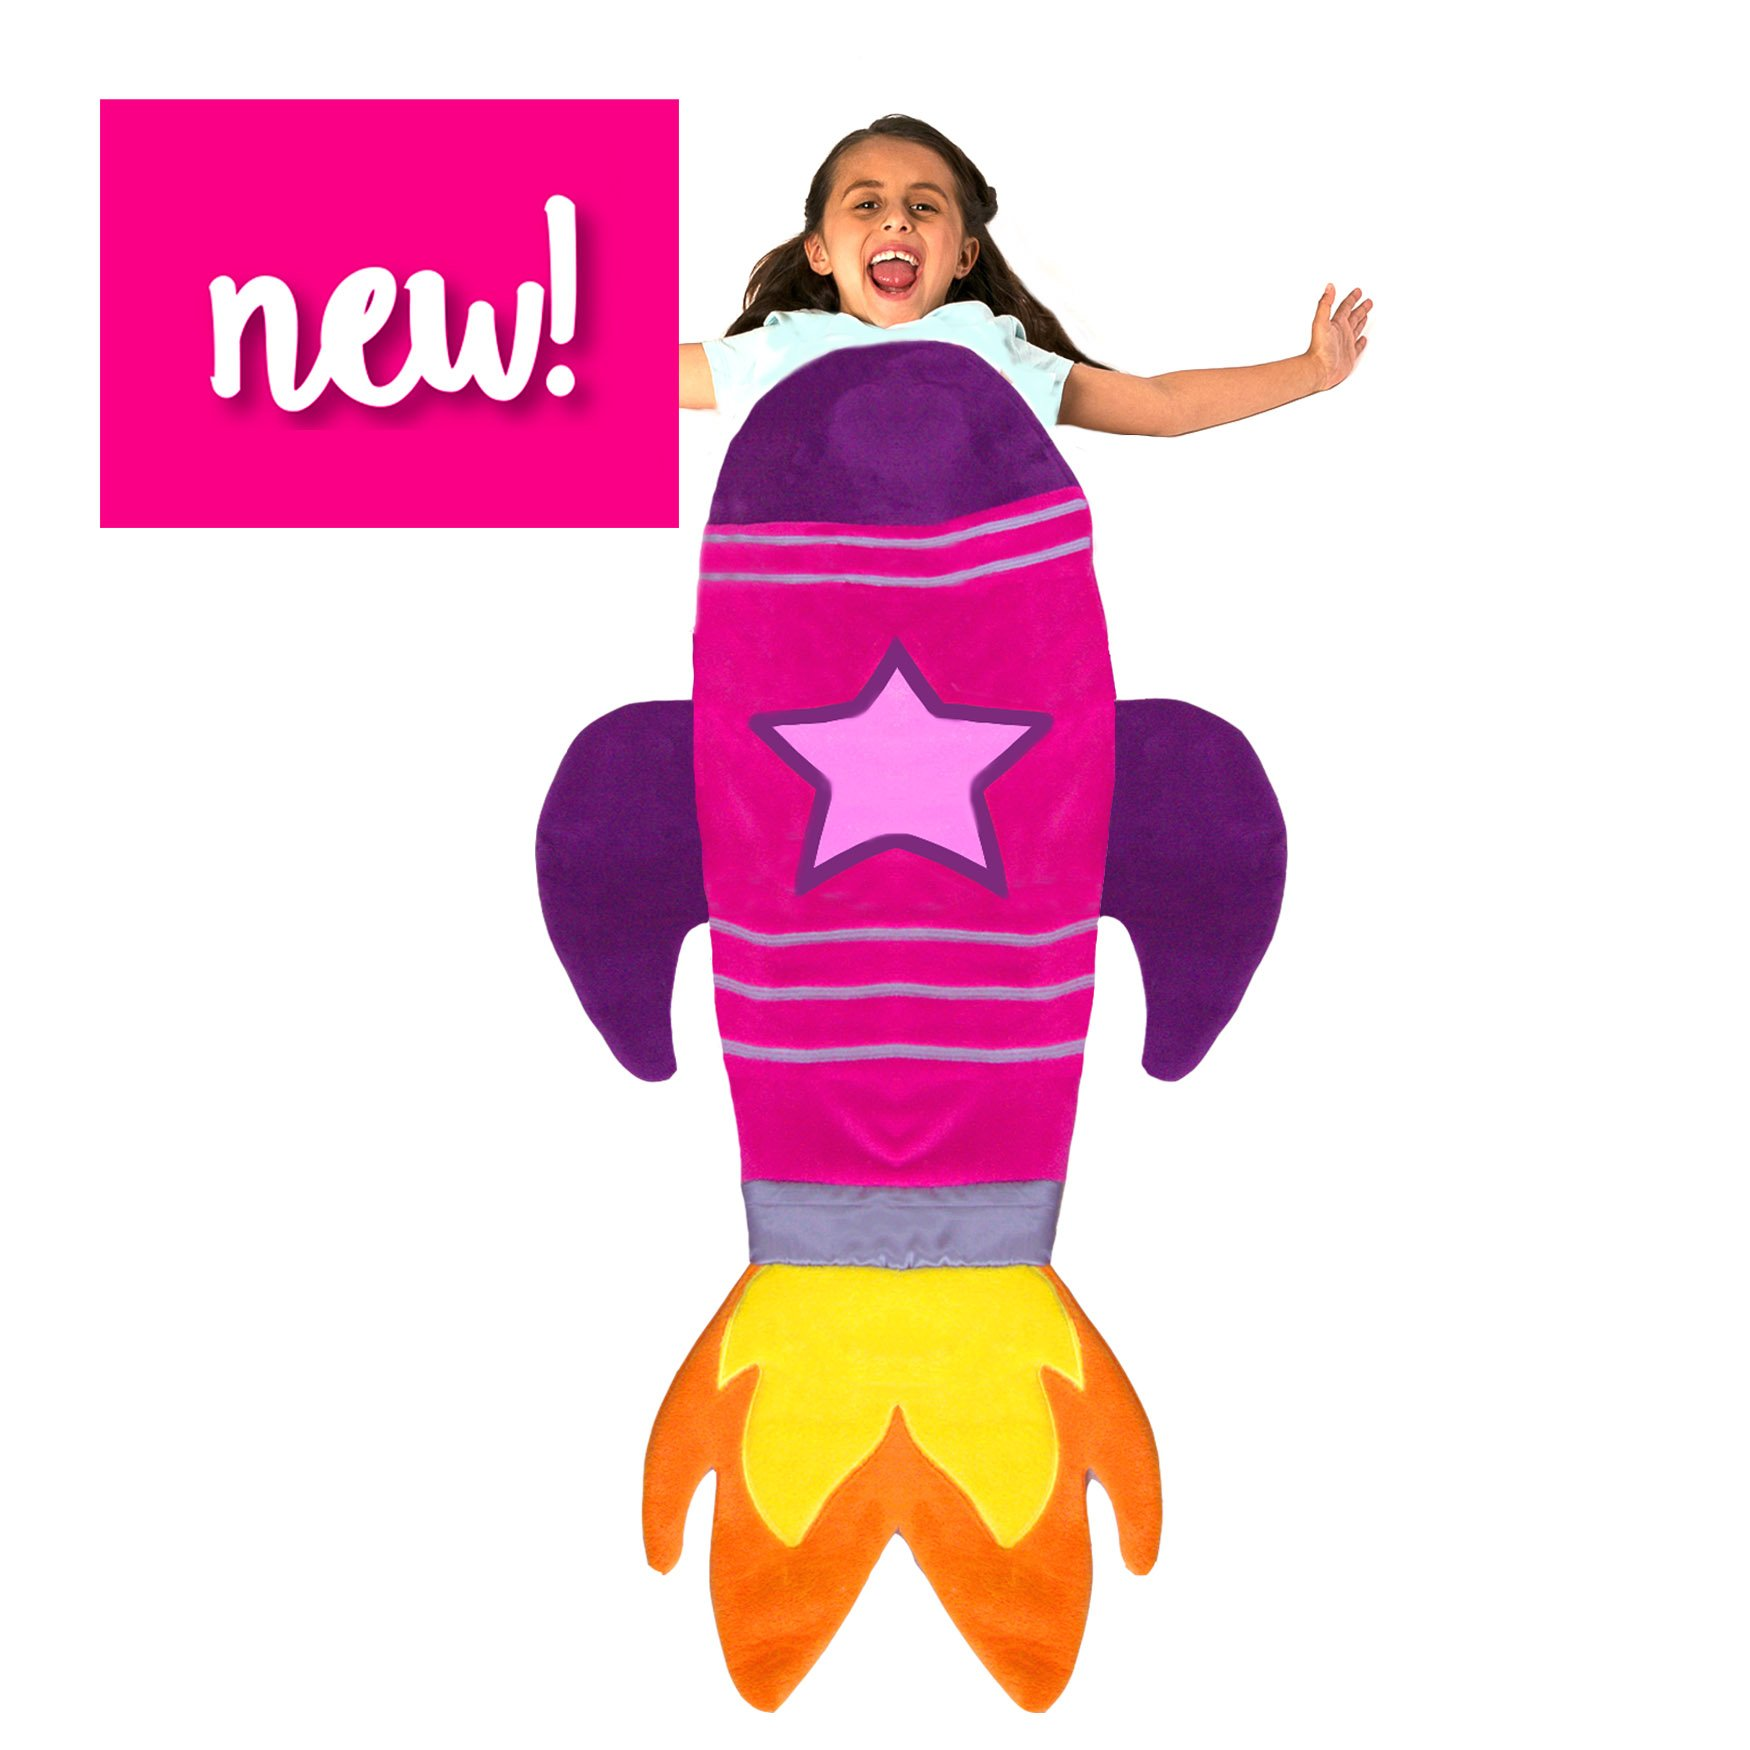 Blankie Tails Rocket Blanket for Kids - New! (Pink) Super Fun Design Lets Kids Climb Inside - Premium Quality Rocket Bedding in Pink - Favorite Birthday Gift Kids by Blankie Tails